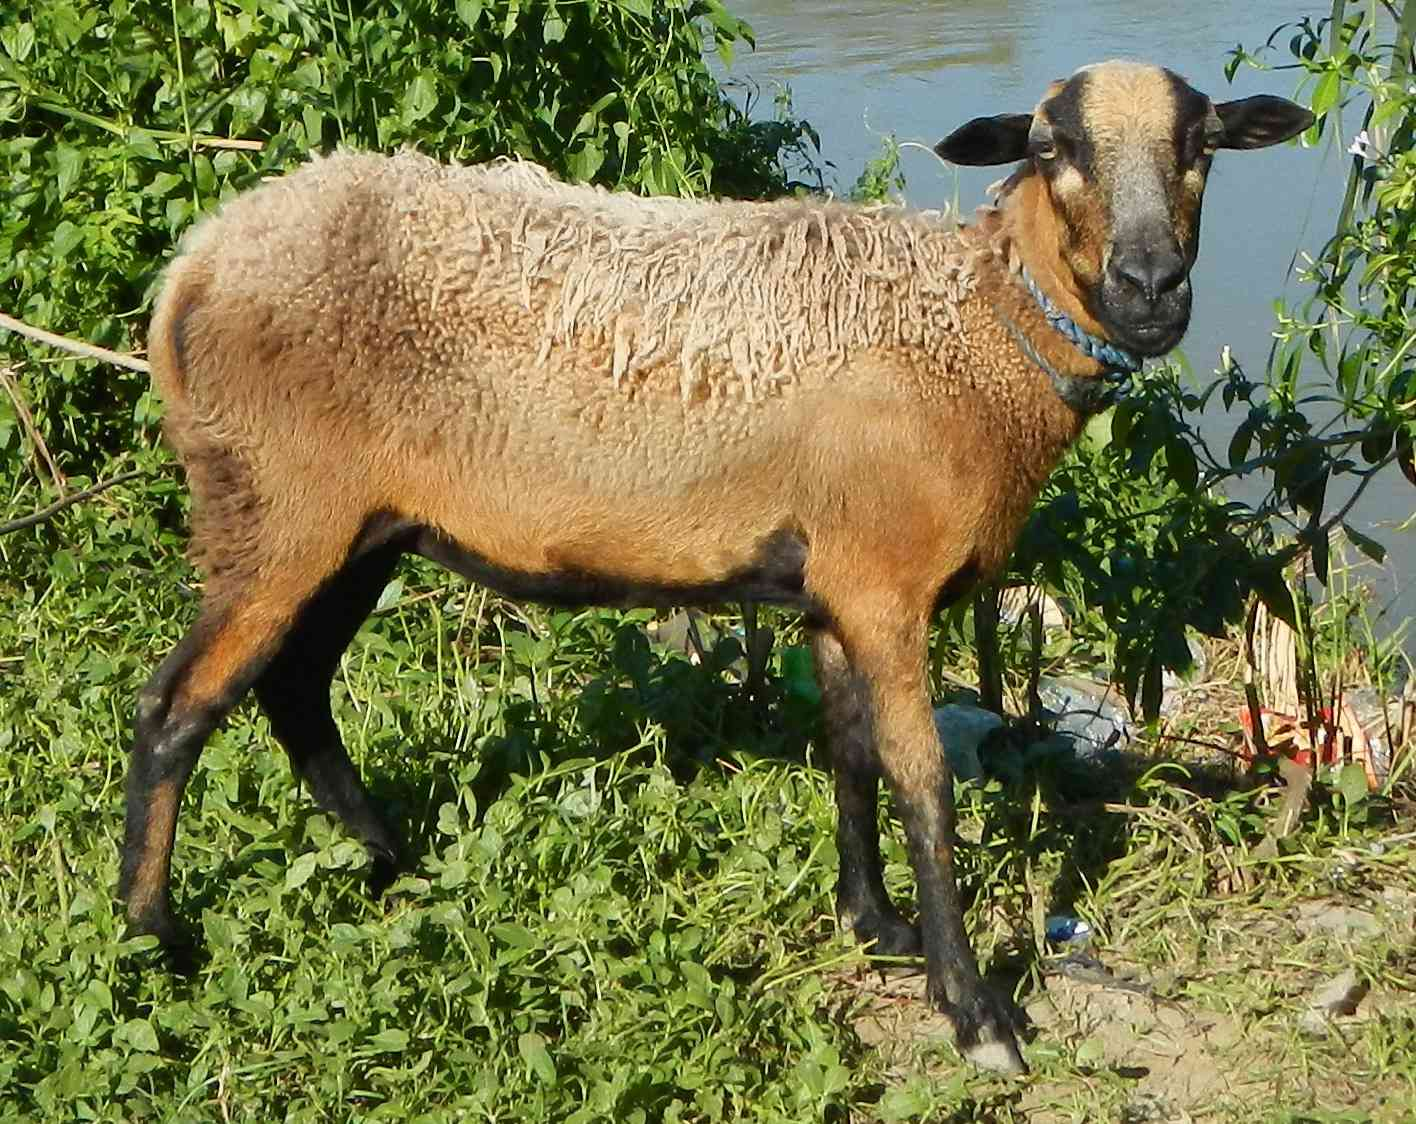 a sheep-goat hybrid with longish brown coat stares at camera